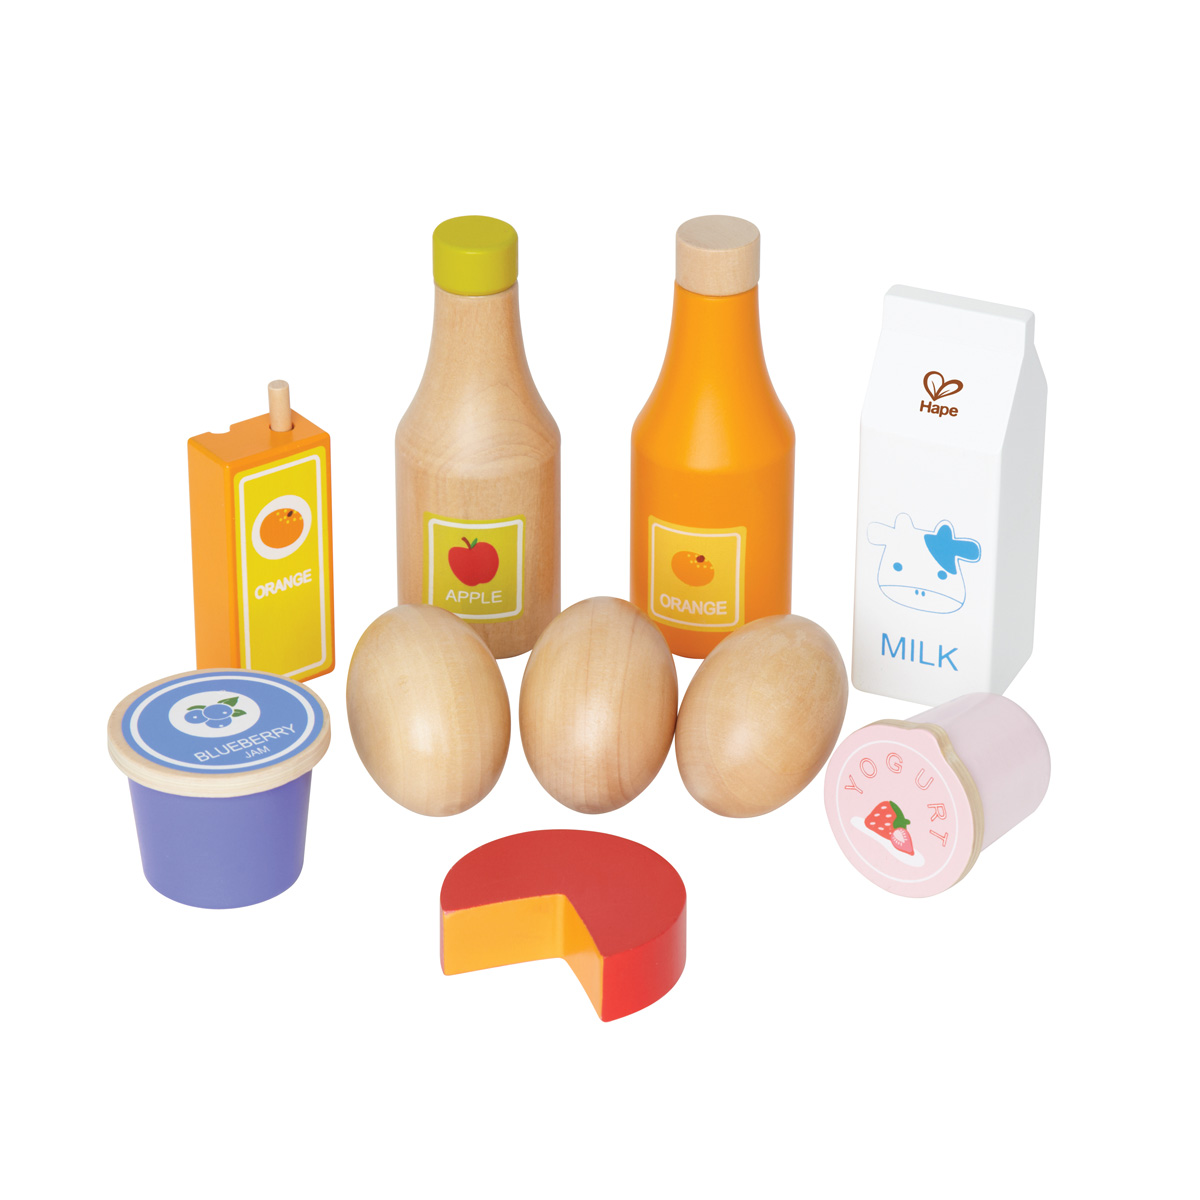 Hape Healthy Basics Wooden Food Set